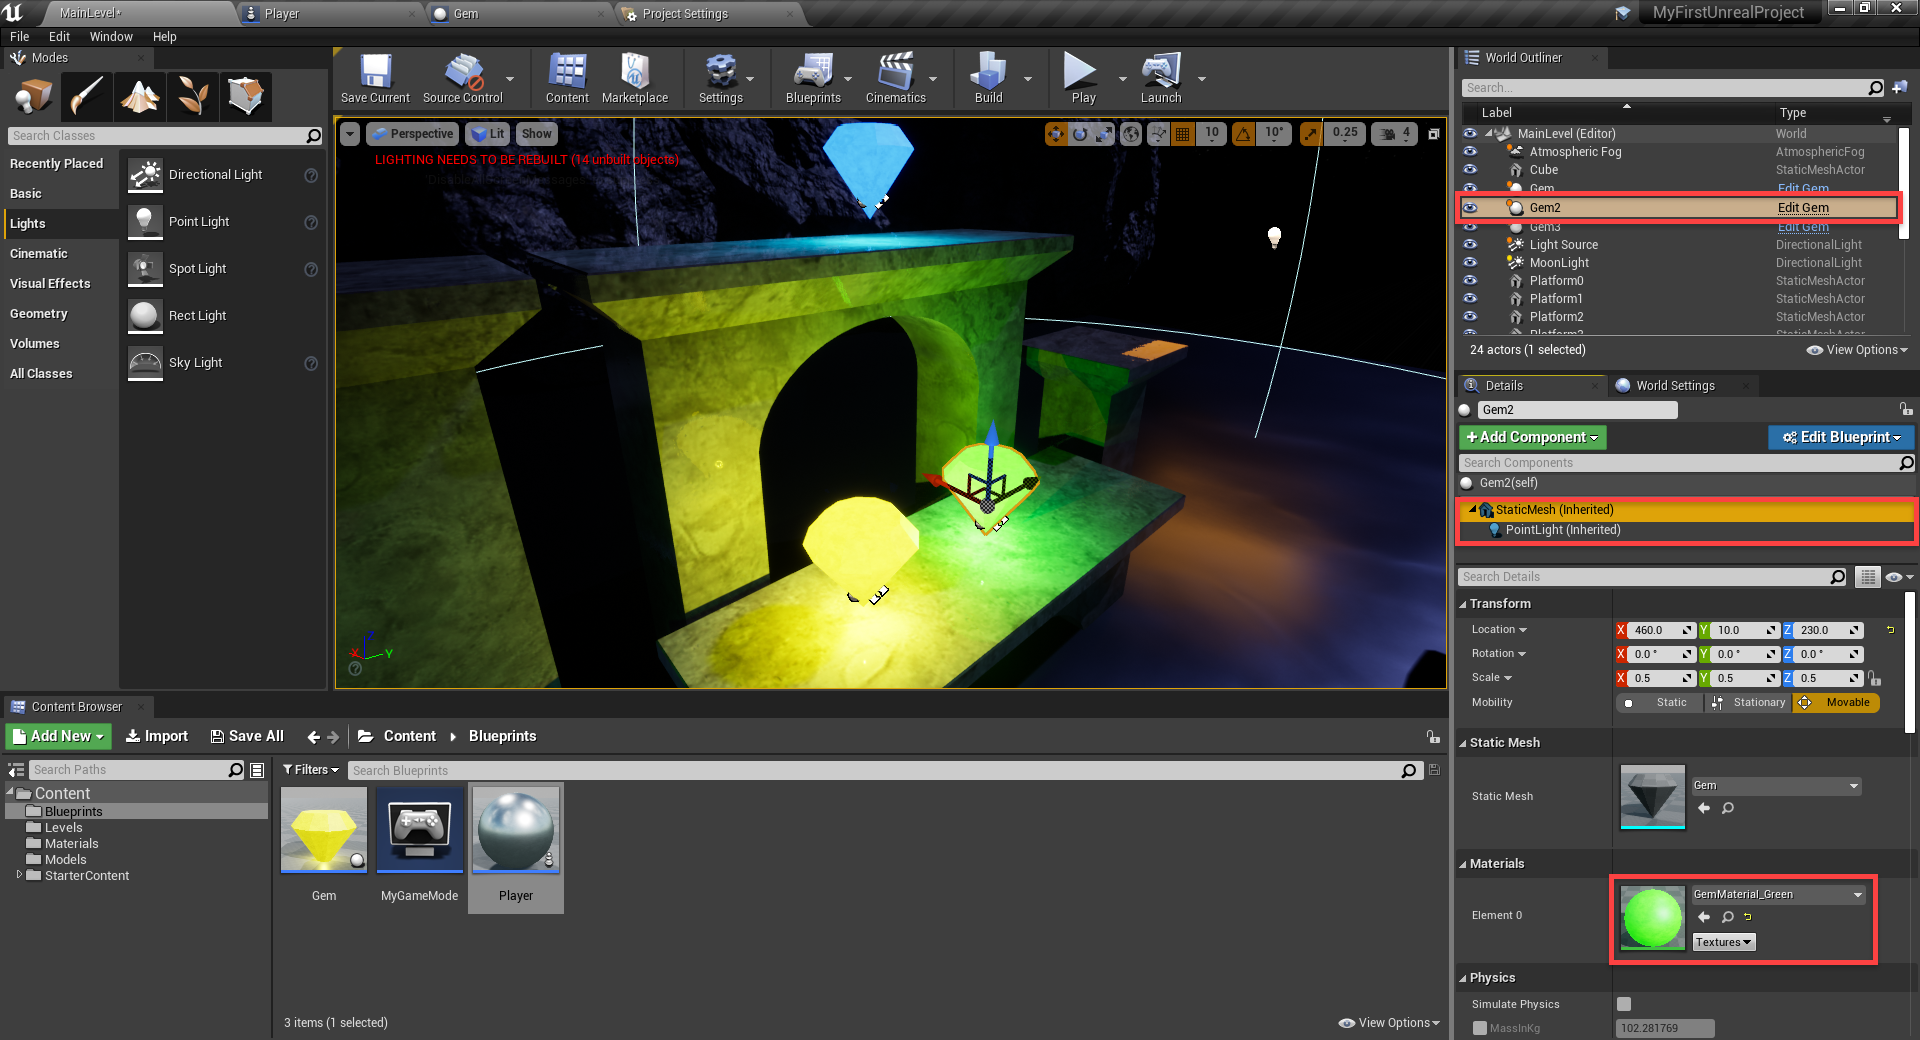 Green glowing gem added to Unreal Engine project